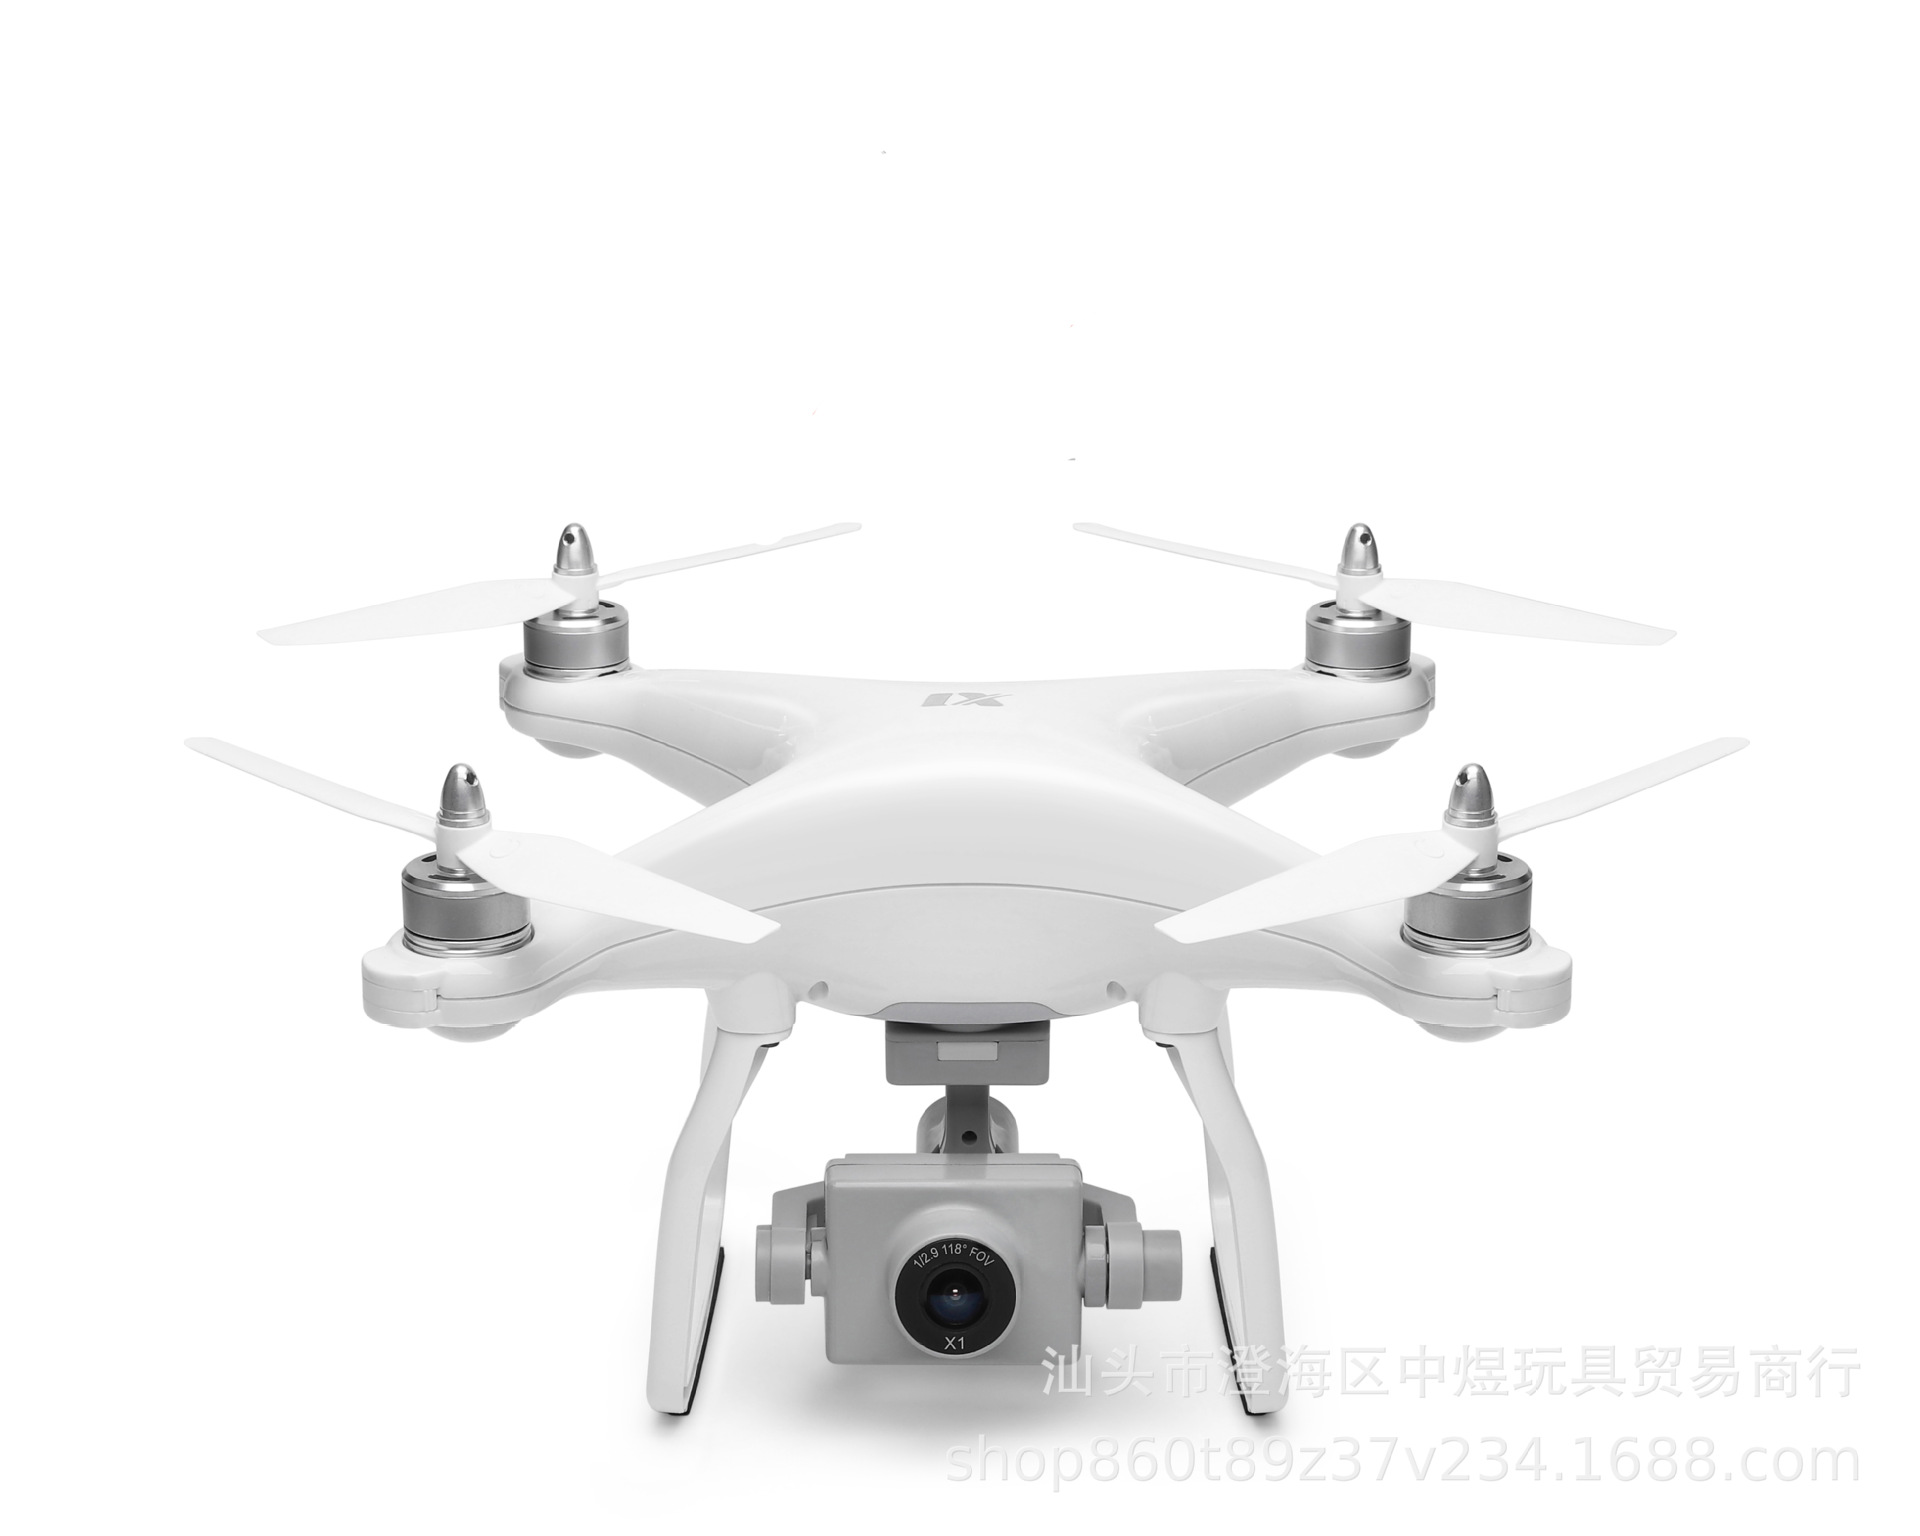 Weili X1 Unmanned Aerial Vehicle Profession Two-shaft Cradle Head 5g Super Clear Anti-shake 4K Aerial Photography GPS Brushless